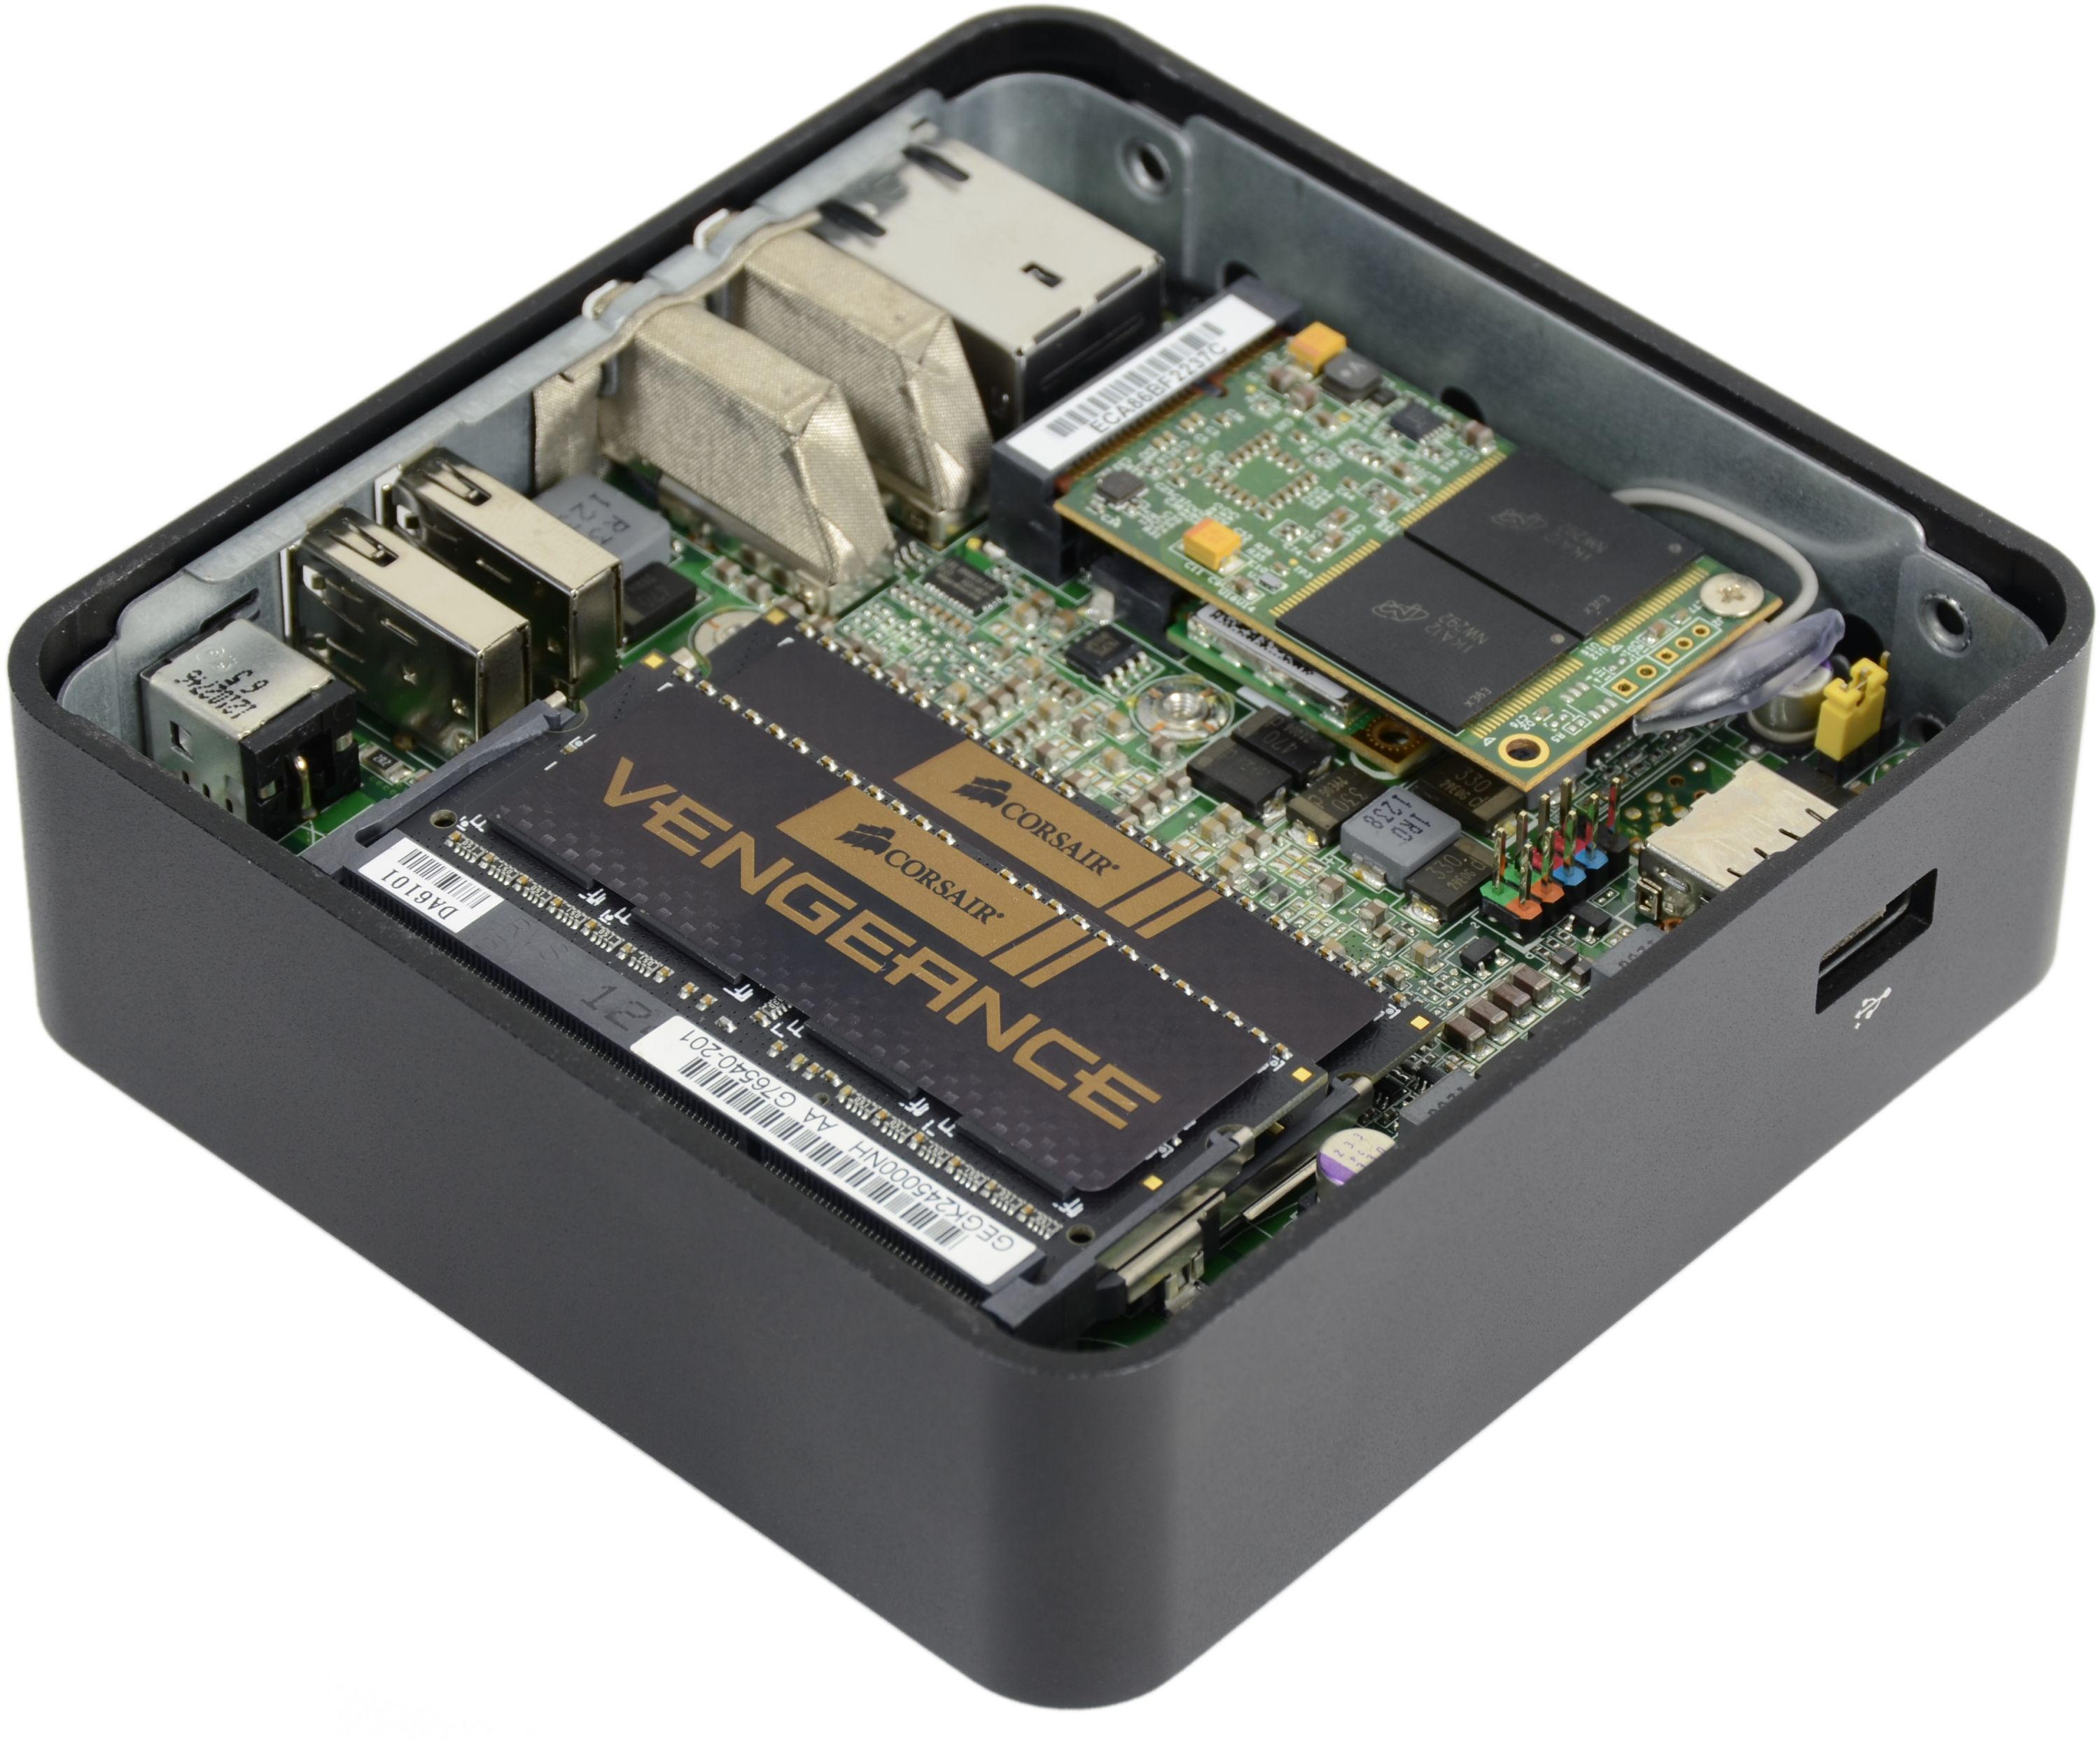 intel nuc next unit of computing kits. Black Bedroom Furniture Sets. Home Design Ideas